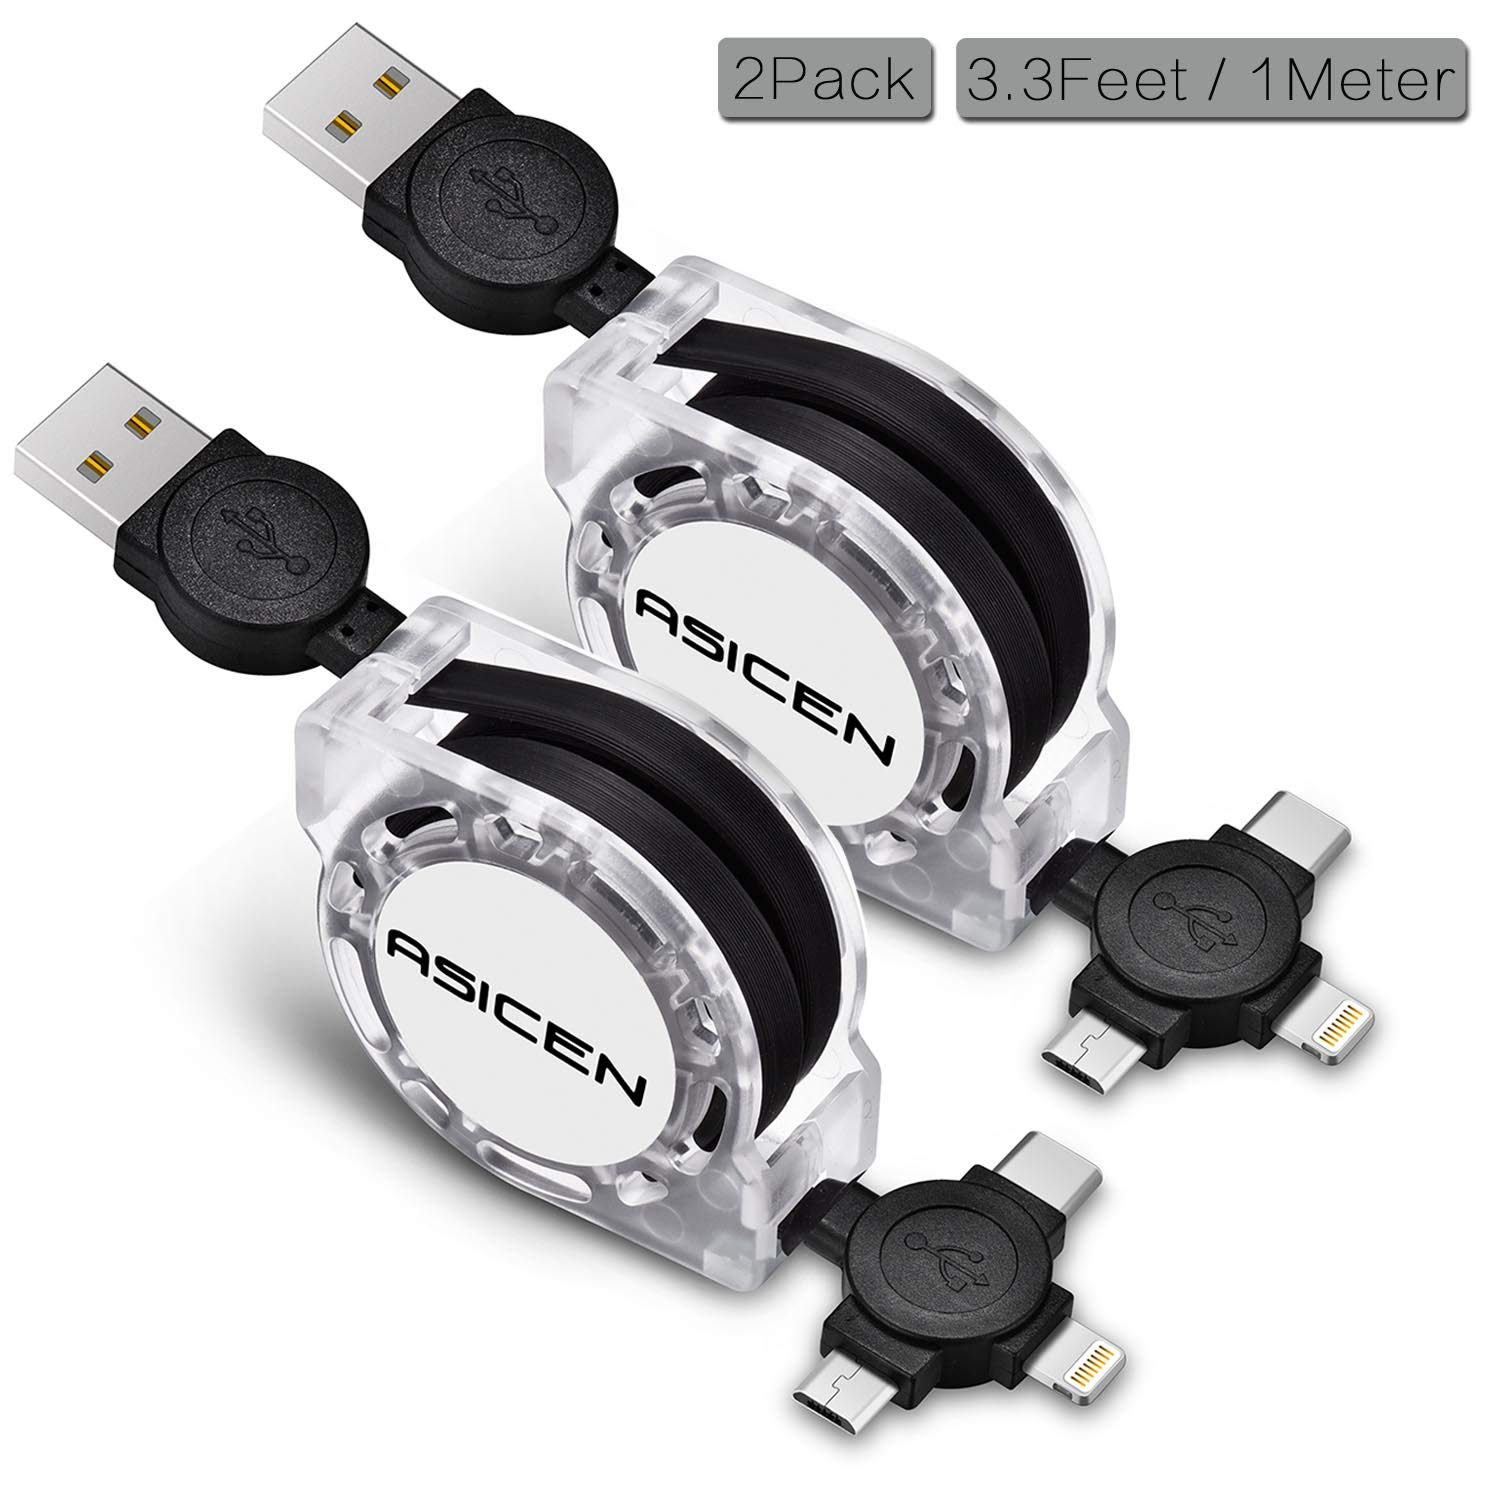 Micro USB Charging Cable, ASICEN 2Pack 3-in-1 Multi Retractable Lightning to USB Cable Type C Sync Fast Charging Cord for iPhone, iPad Mini/Pro/Air, iPod,Samsung,Moto,BlackBerry,Nokia,LG,Google,HTC